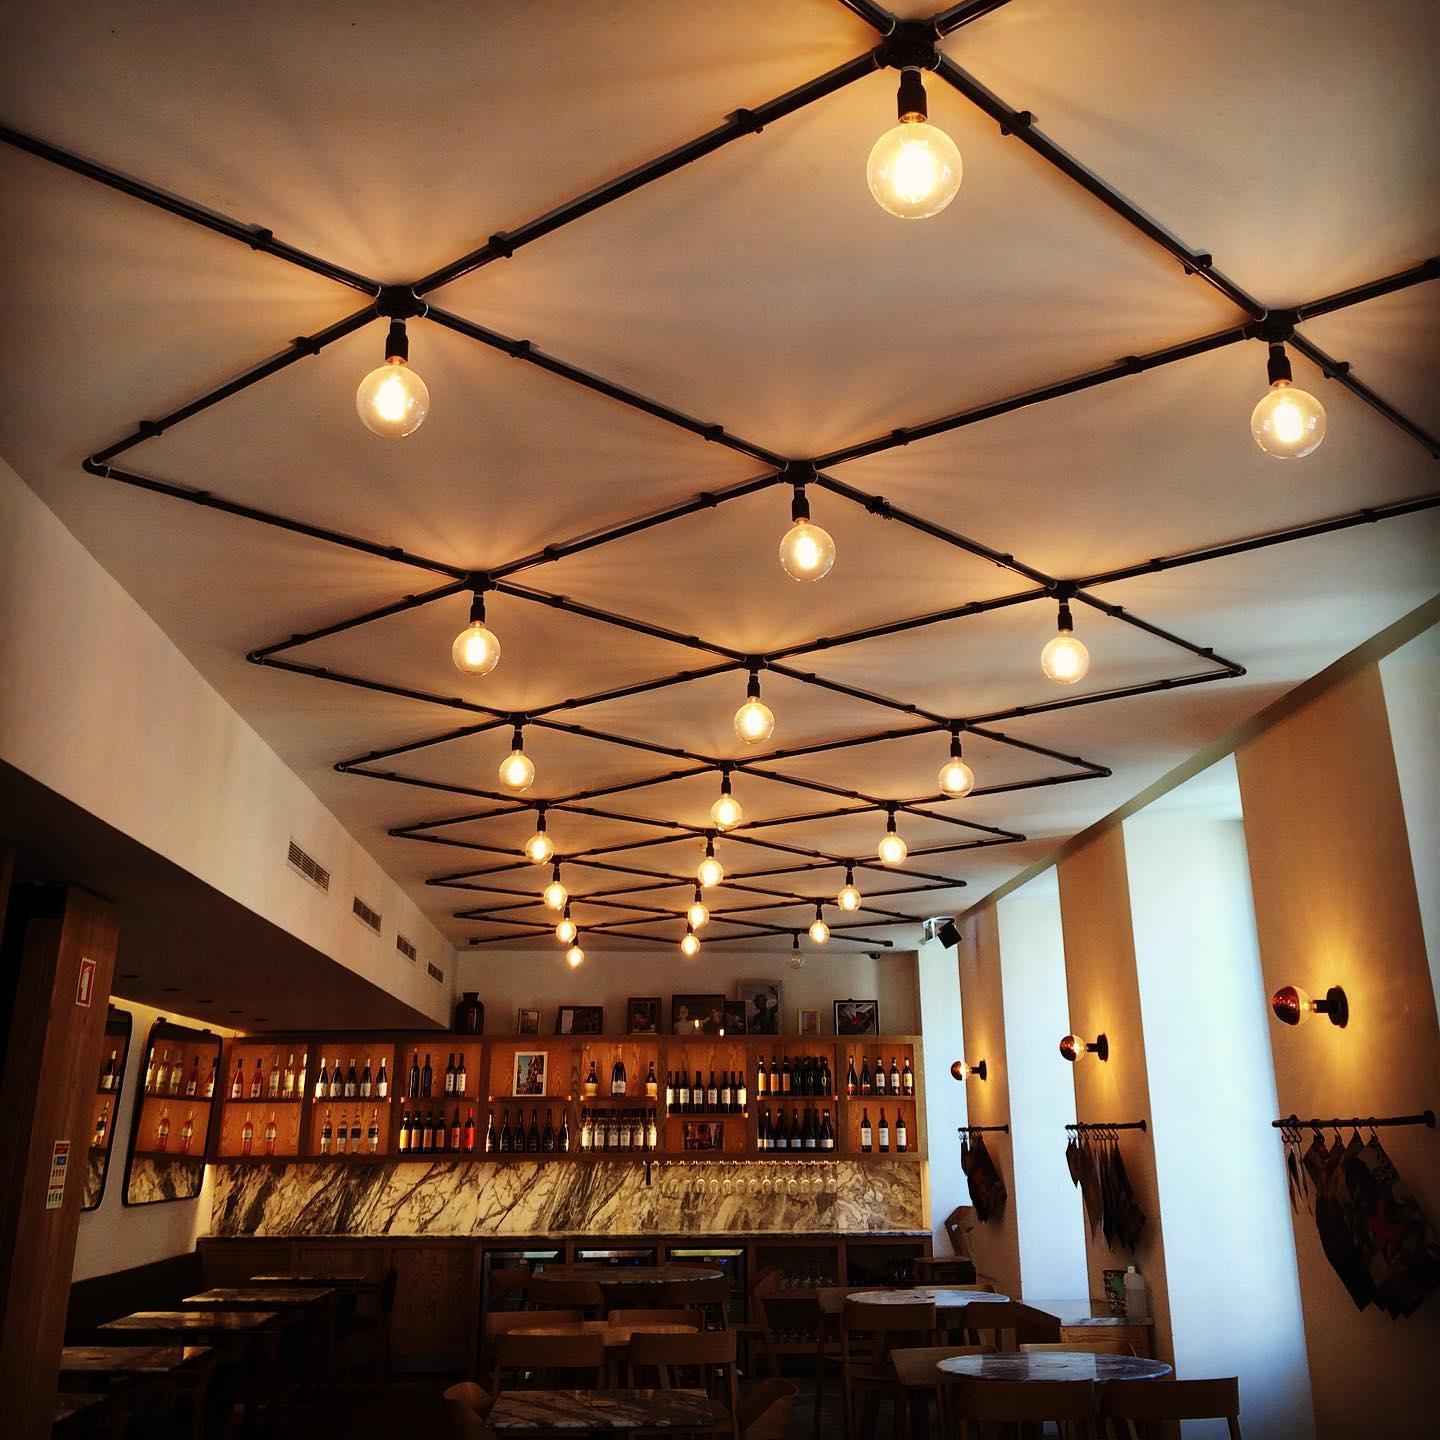 Old projects new challenges#synapse #filamento #lighting_design #riscoarq #manoamano #gruposushicafé